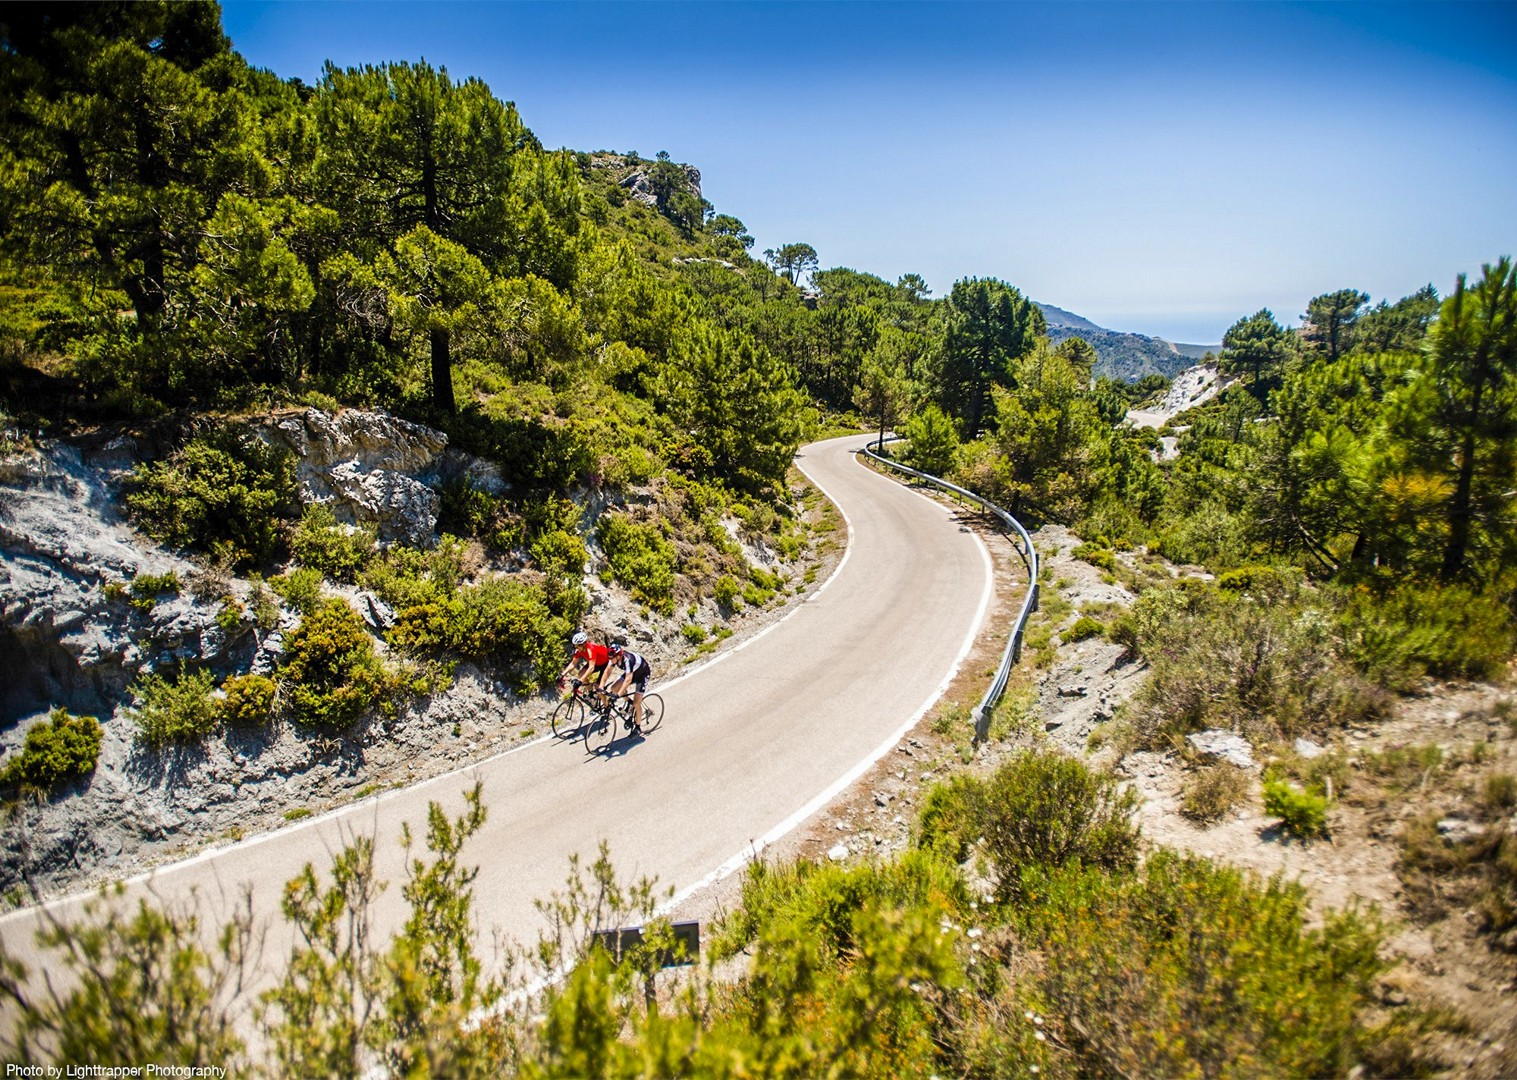 guided-road-cycling-with-incredible-views-southern-spain.jpg - Southern Spain - Roads of Ronda - Road Cycling